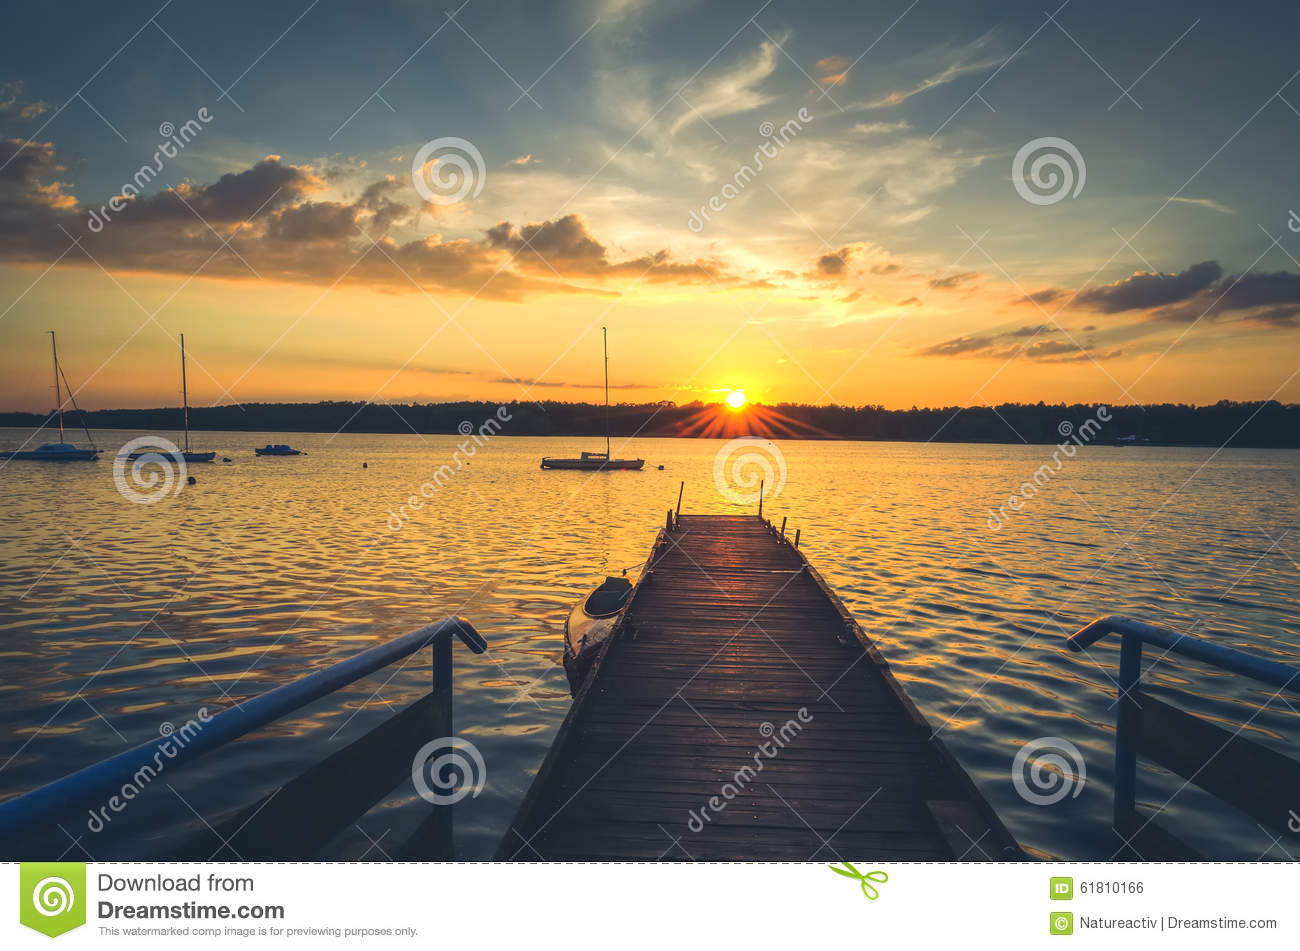 Boats and pier in lake.